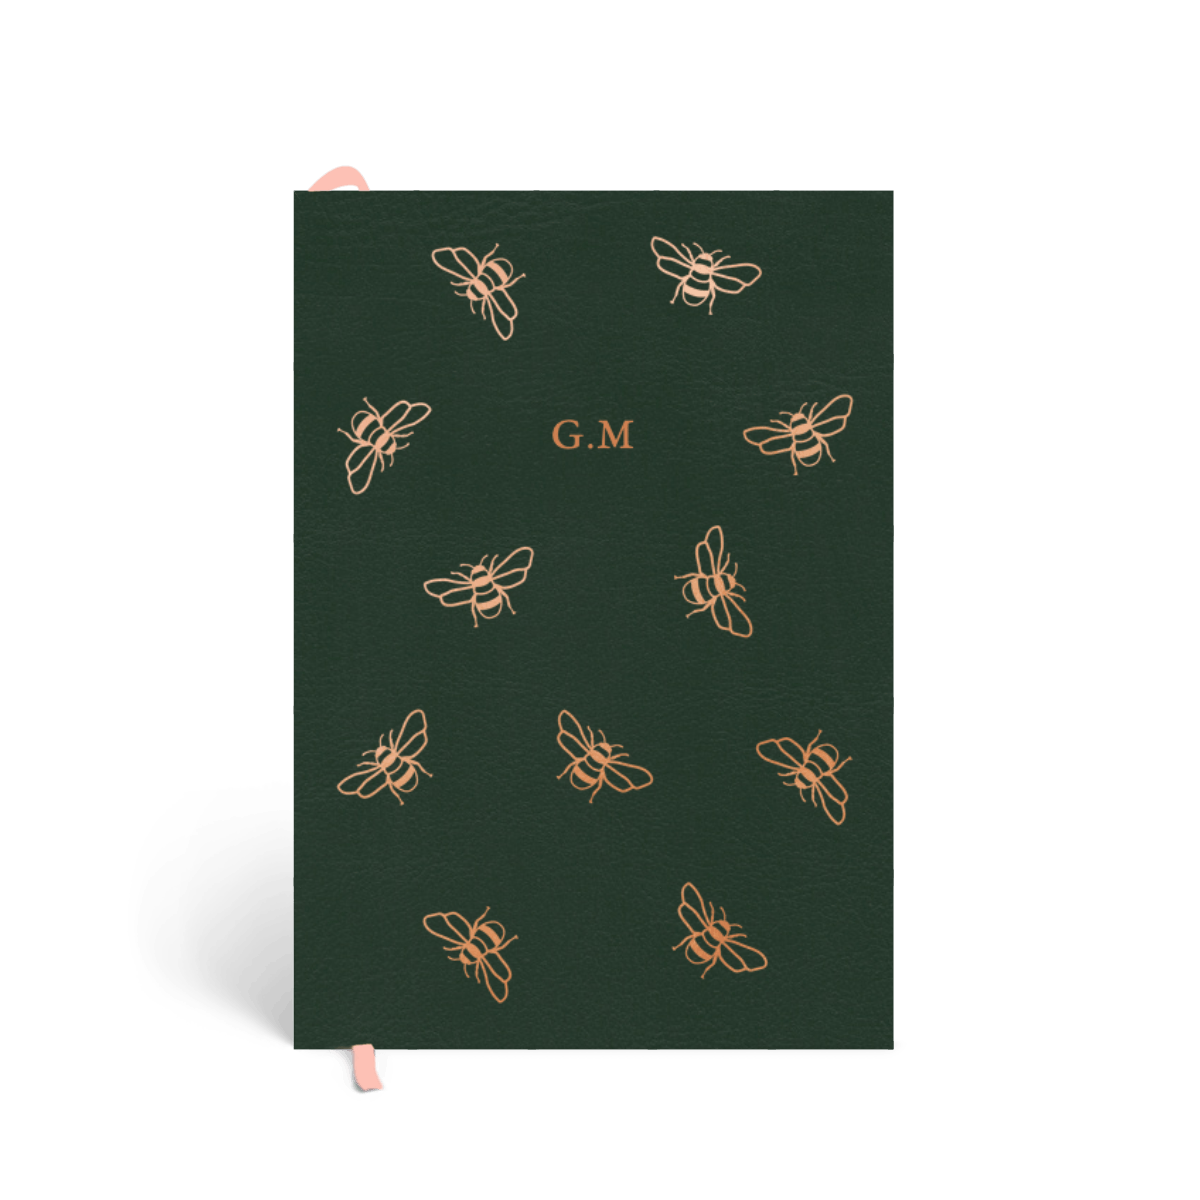 Https%3a%2f%2fwww.papier.com%2fproduct image%2f99120%2f112%2fpine green bee 25245 front 1576670191.png?ixlib=rb 1.1